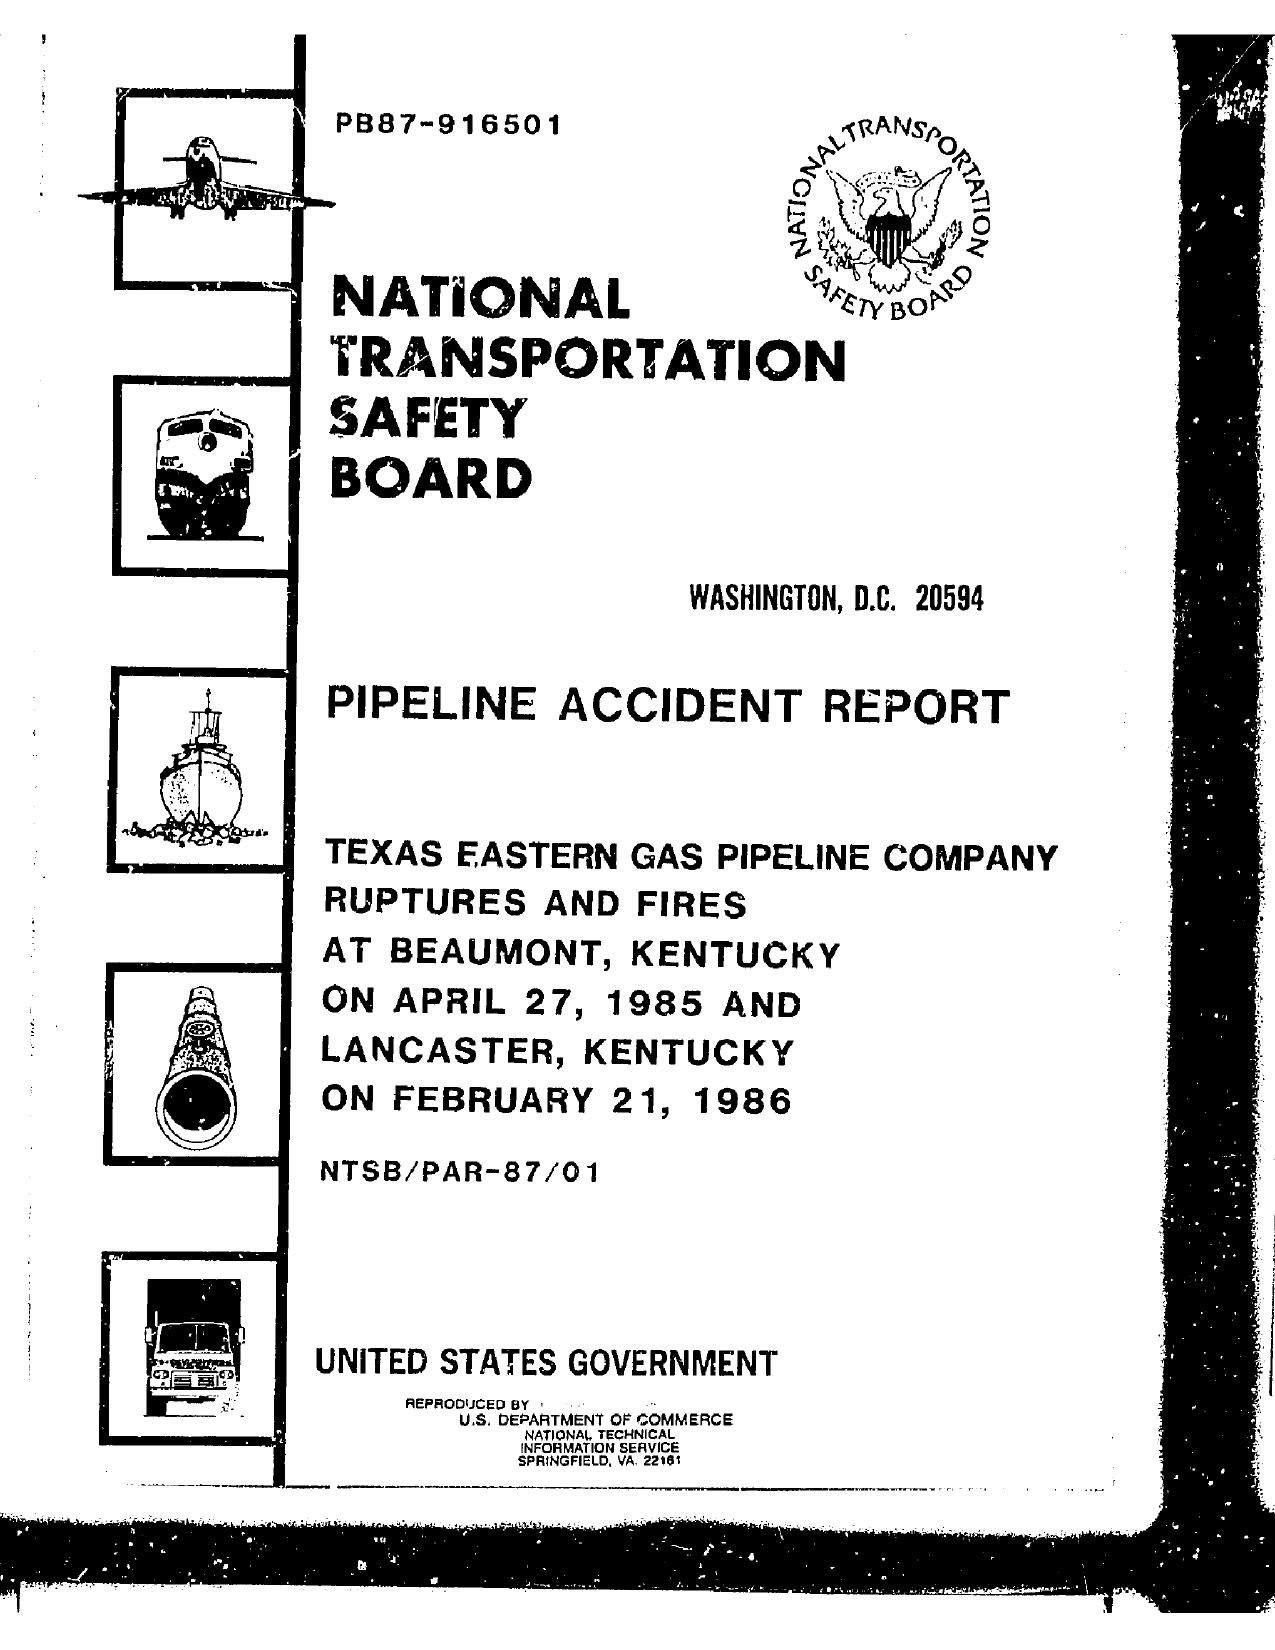 at Beaumont, Kentucky on April 27, 1985 and Lancaster, Kentucky on February 21, 1986, in Texas Eastern Gas Pipeline Company Ruptures and Fires, by John S. Quarterman, for SpectraBusters.org, 18 February 1987